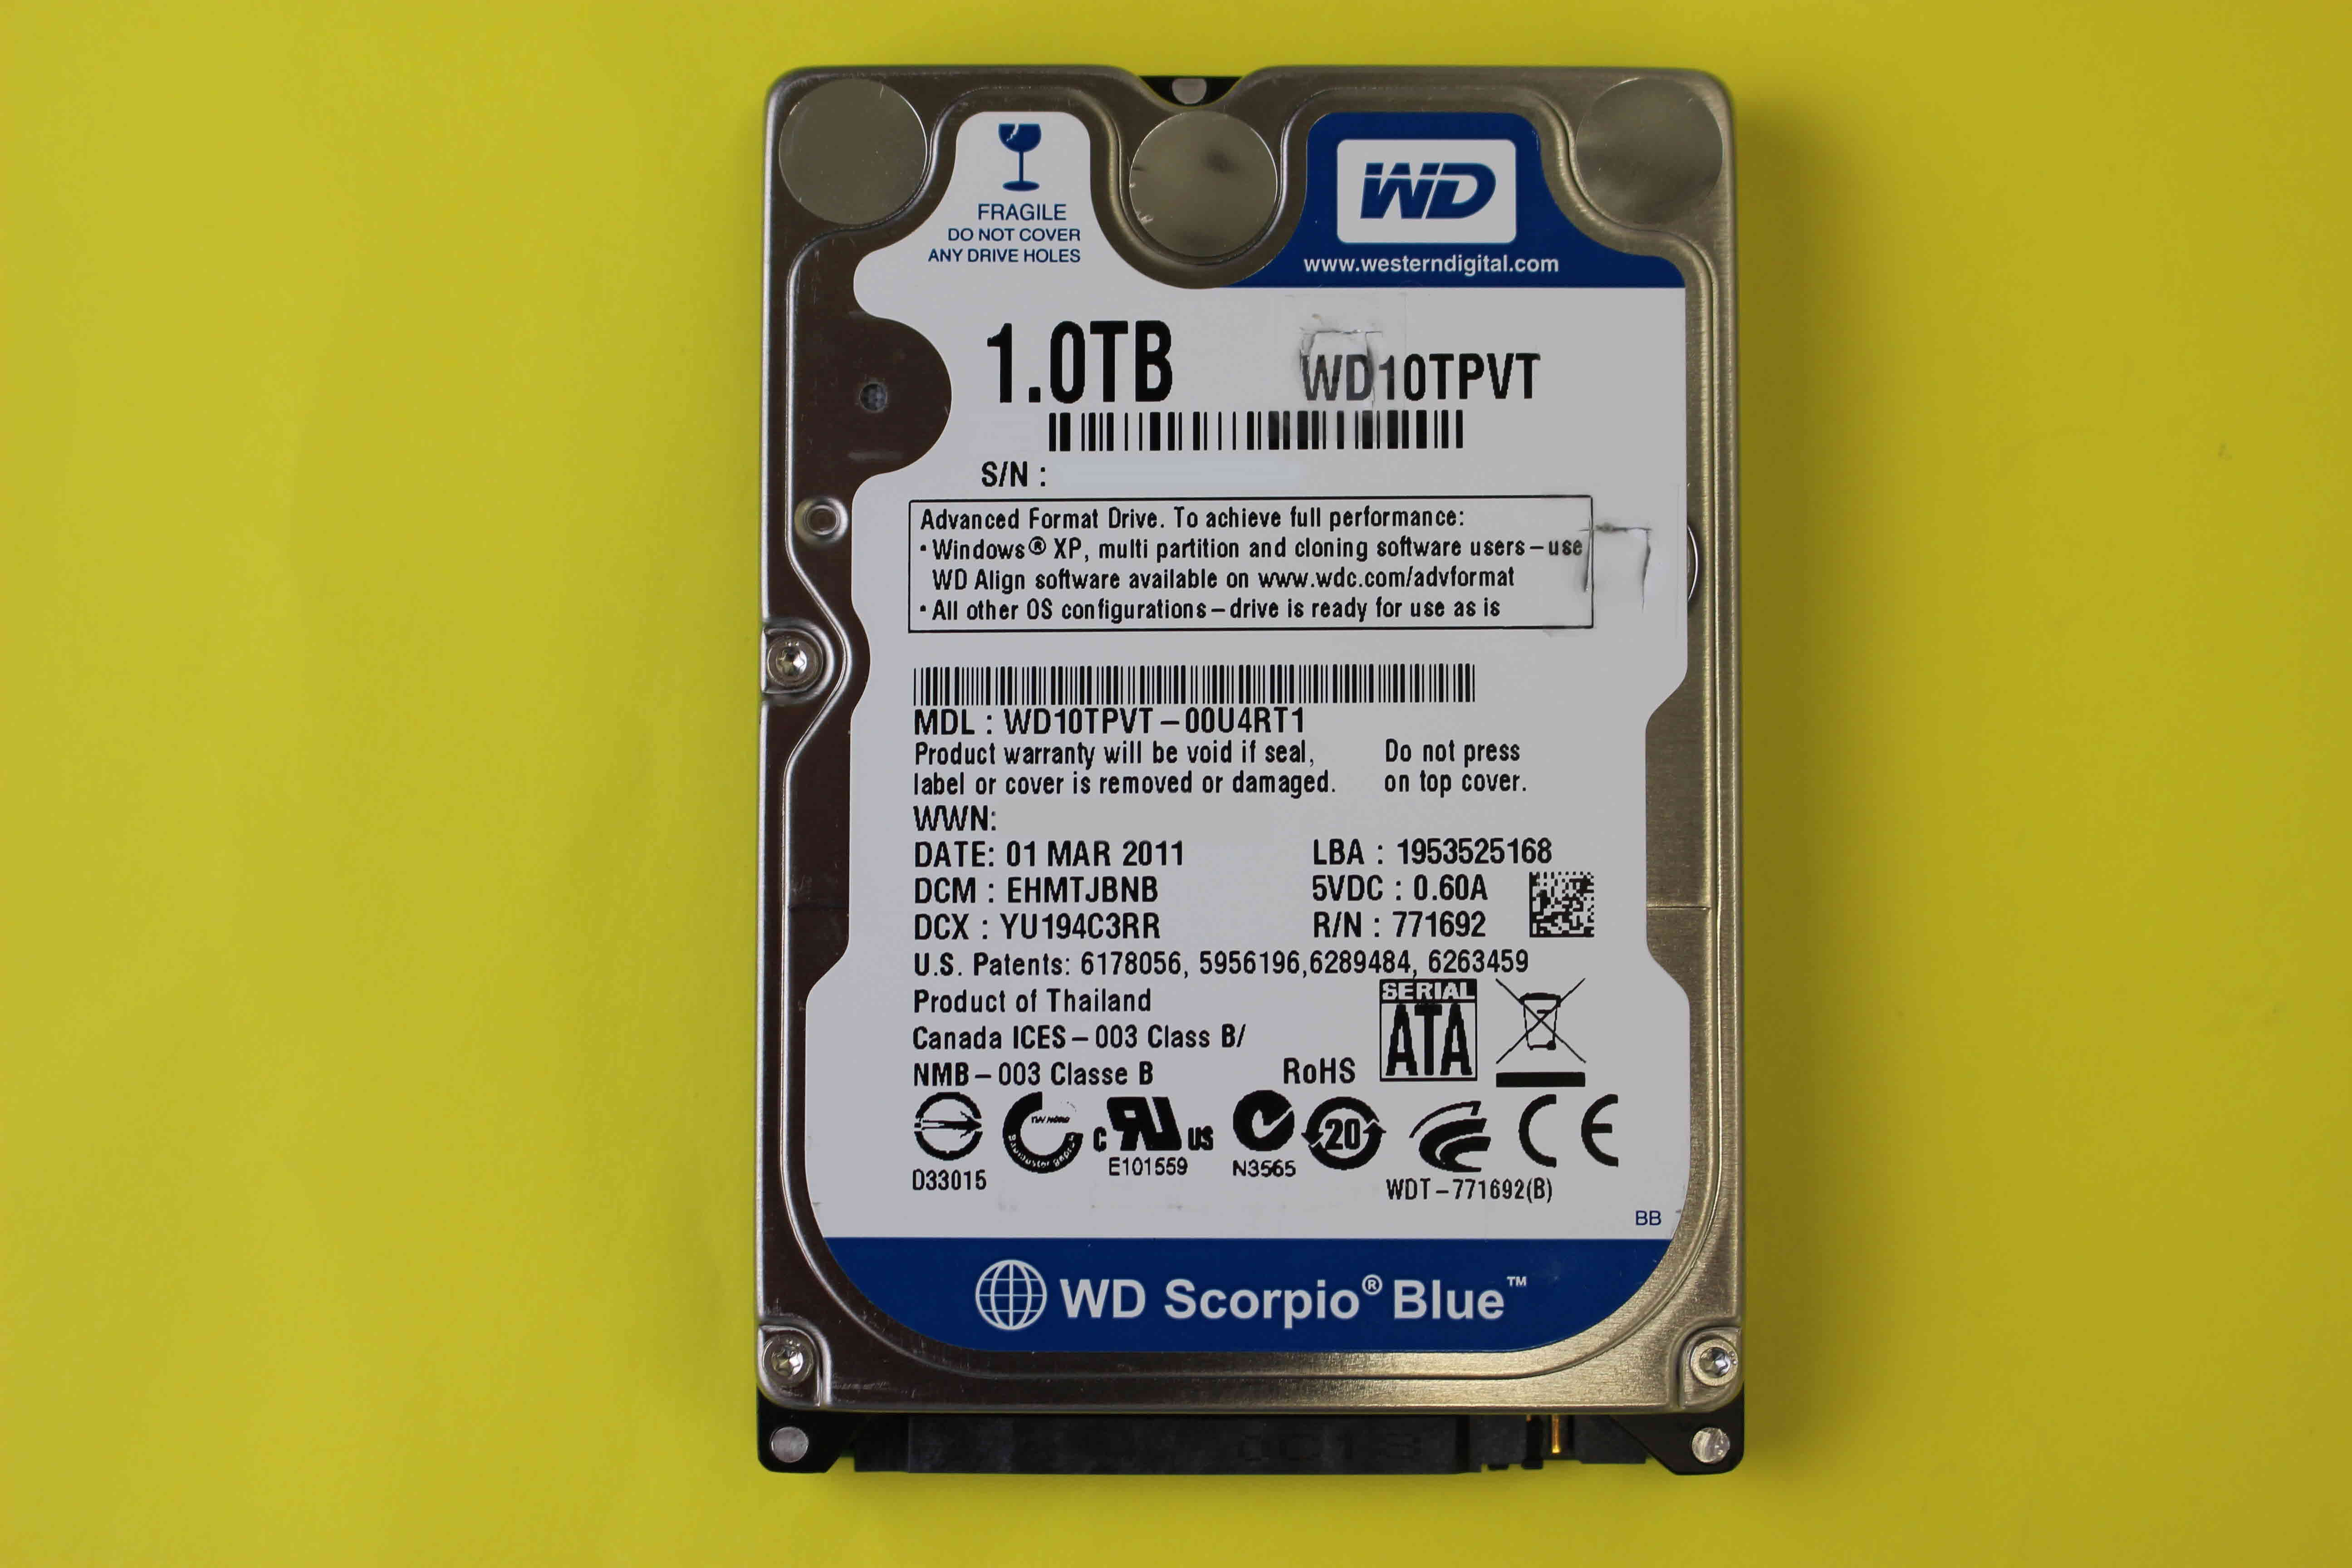 wd10tpvt-00u4rt1-recovery